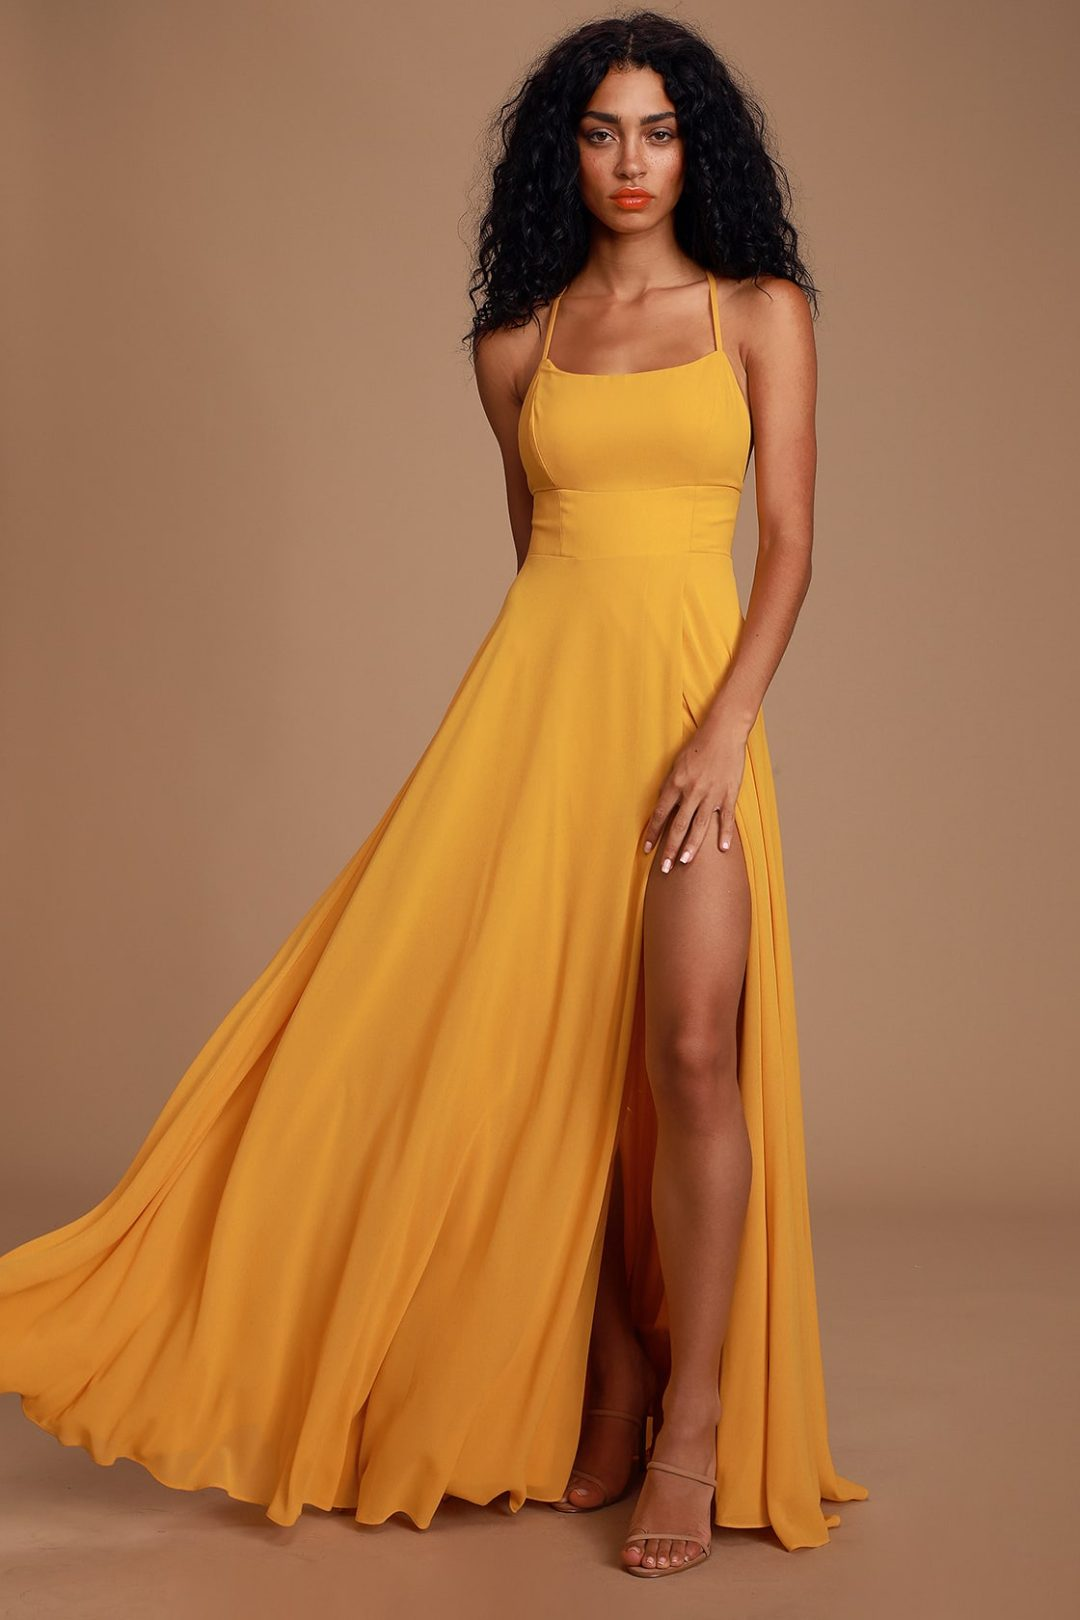 Mustard yellow long ball gown with plit